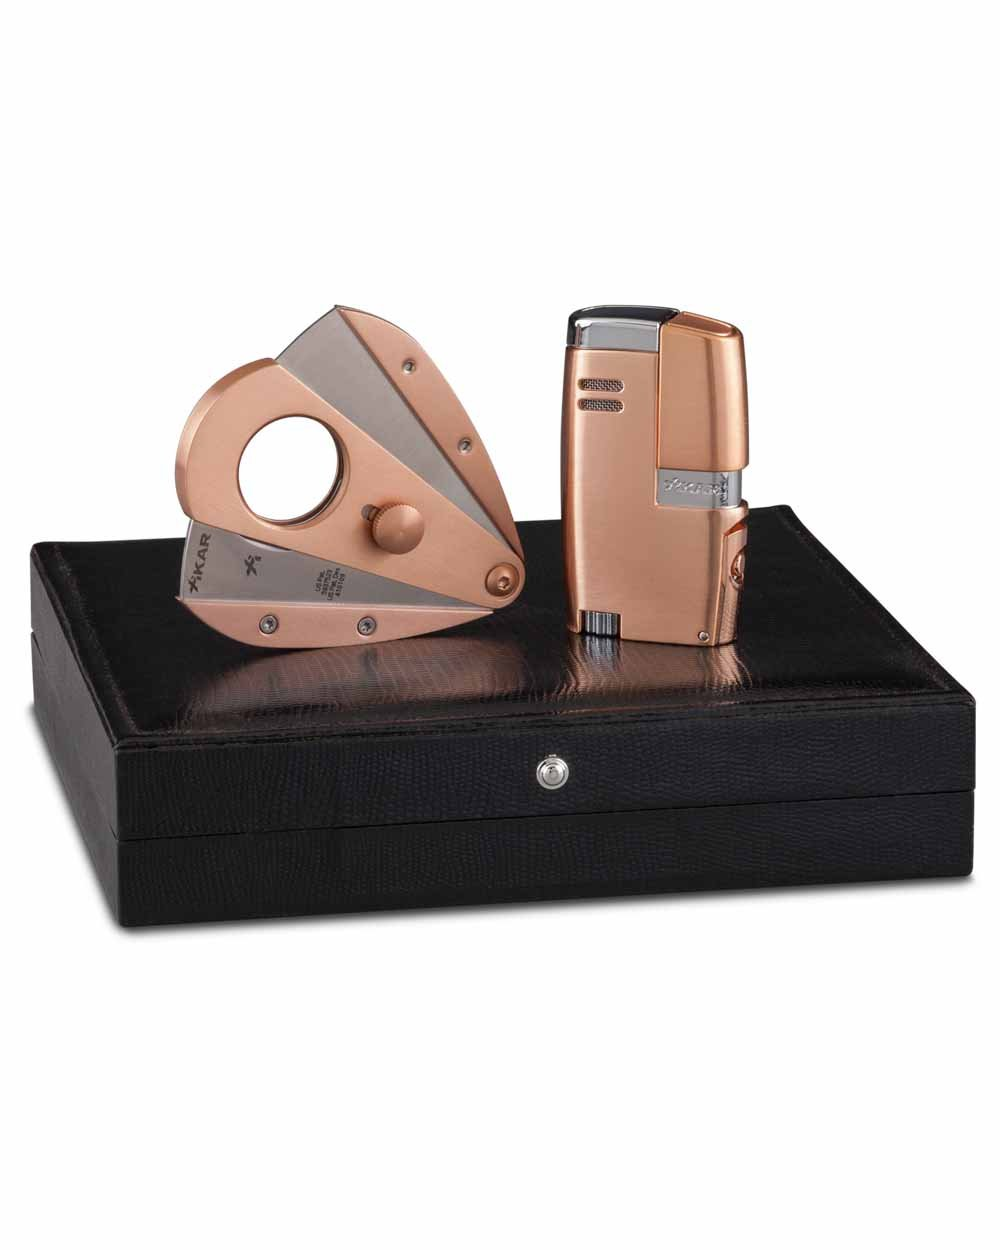 Rose Gold Limited Edition Vitara Cigar Lighter Xi3 Cutter in an Attractive Gift Box Warranty